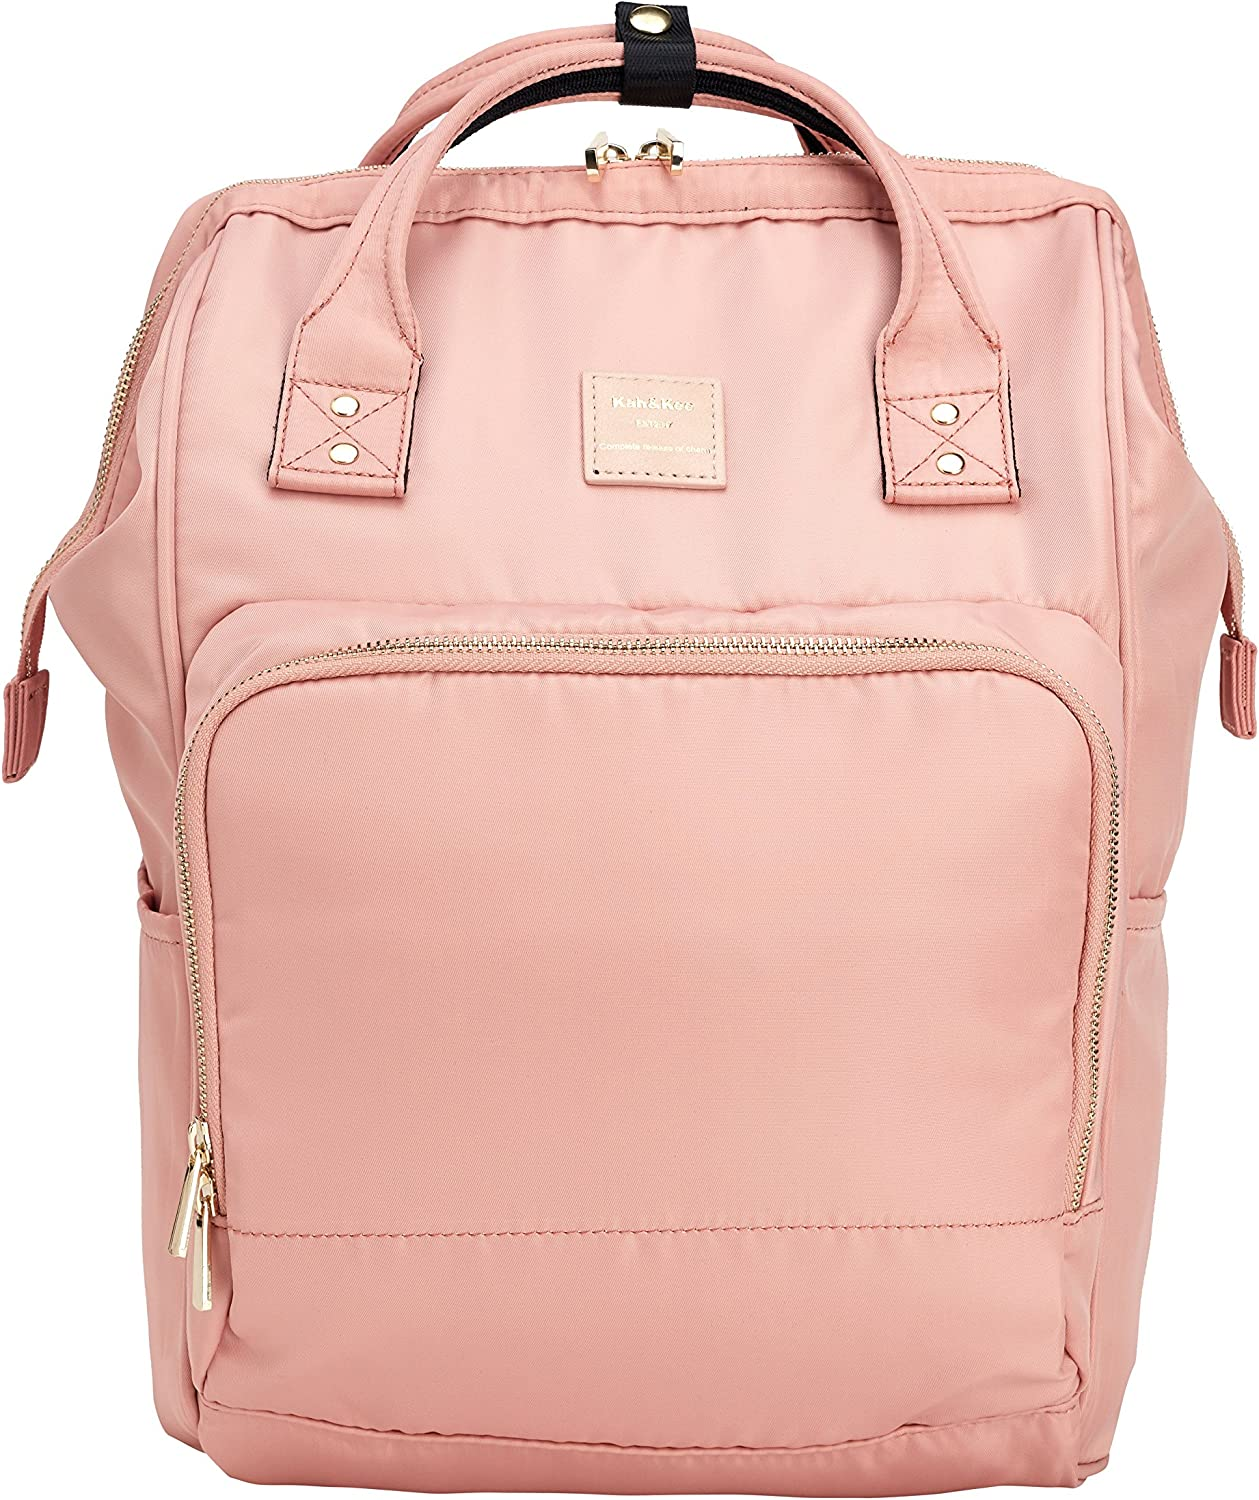 Kah&Kee Nylon Backpack Diaper Bag with Laptop Compartment Waterproof Work Travel School for Women Man (Nude Pink)